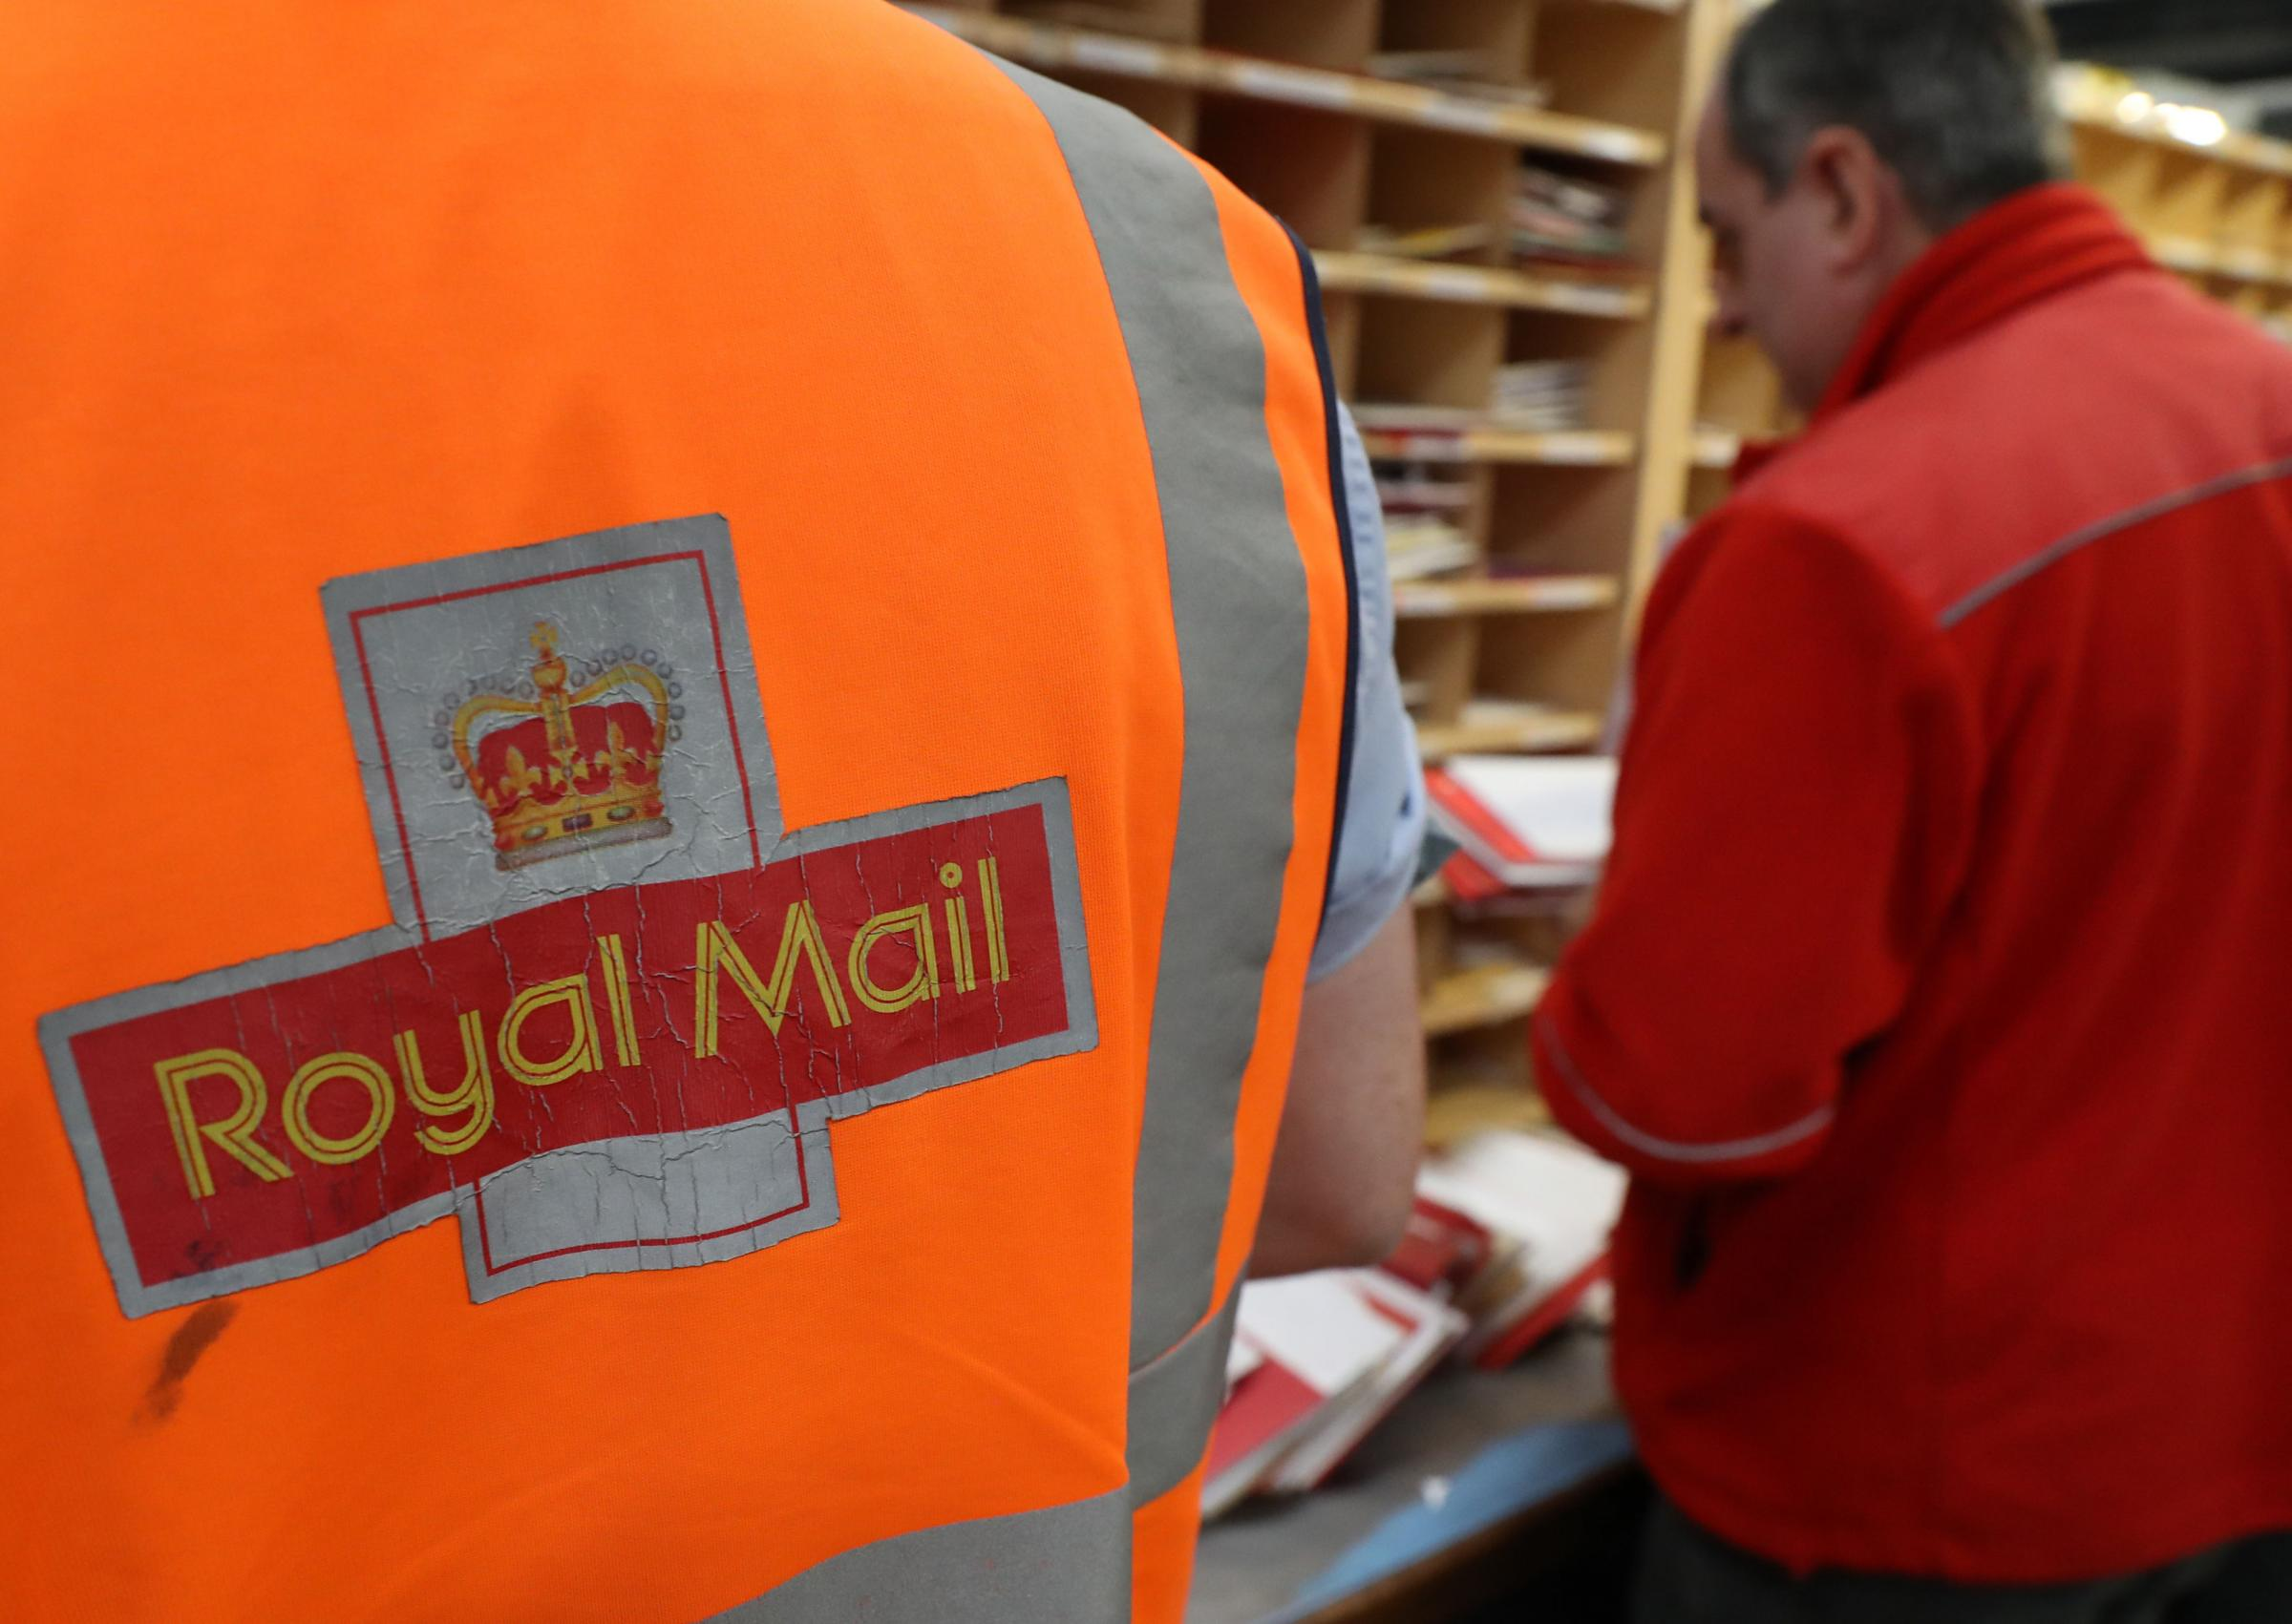 File photo dated 15/12/16 of Royal Mail workers at a sorting office. The result of a ballot for strikes by Royal Mail workers in a bitter dispute over pensions, pay and jobs will be announced on Tuesday. PRESS ASSOCIATION Photo. Issue date: Tuesday Octobe